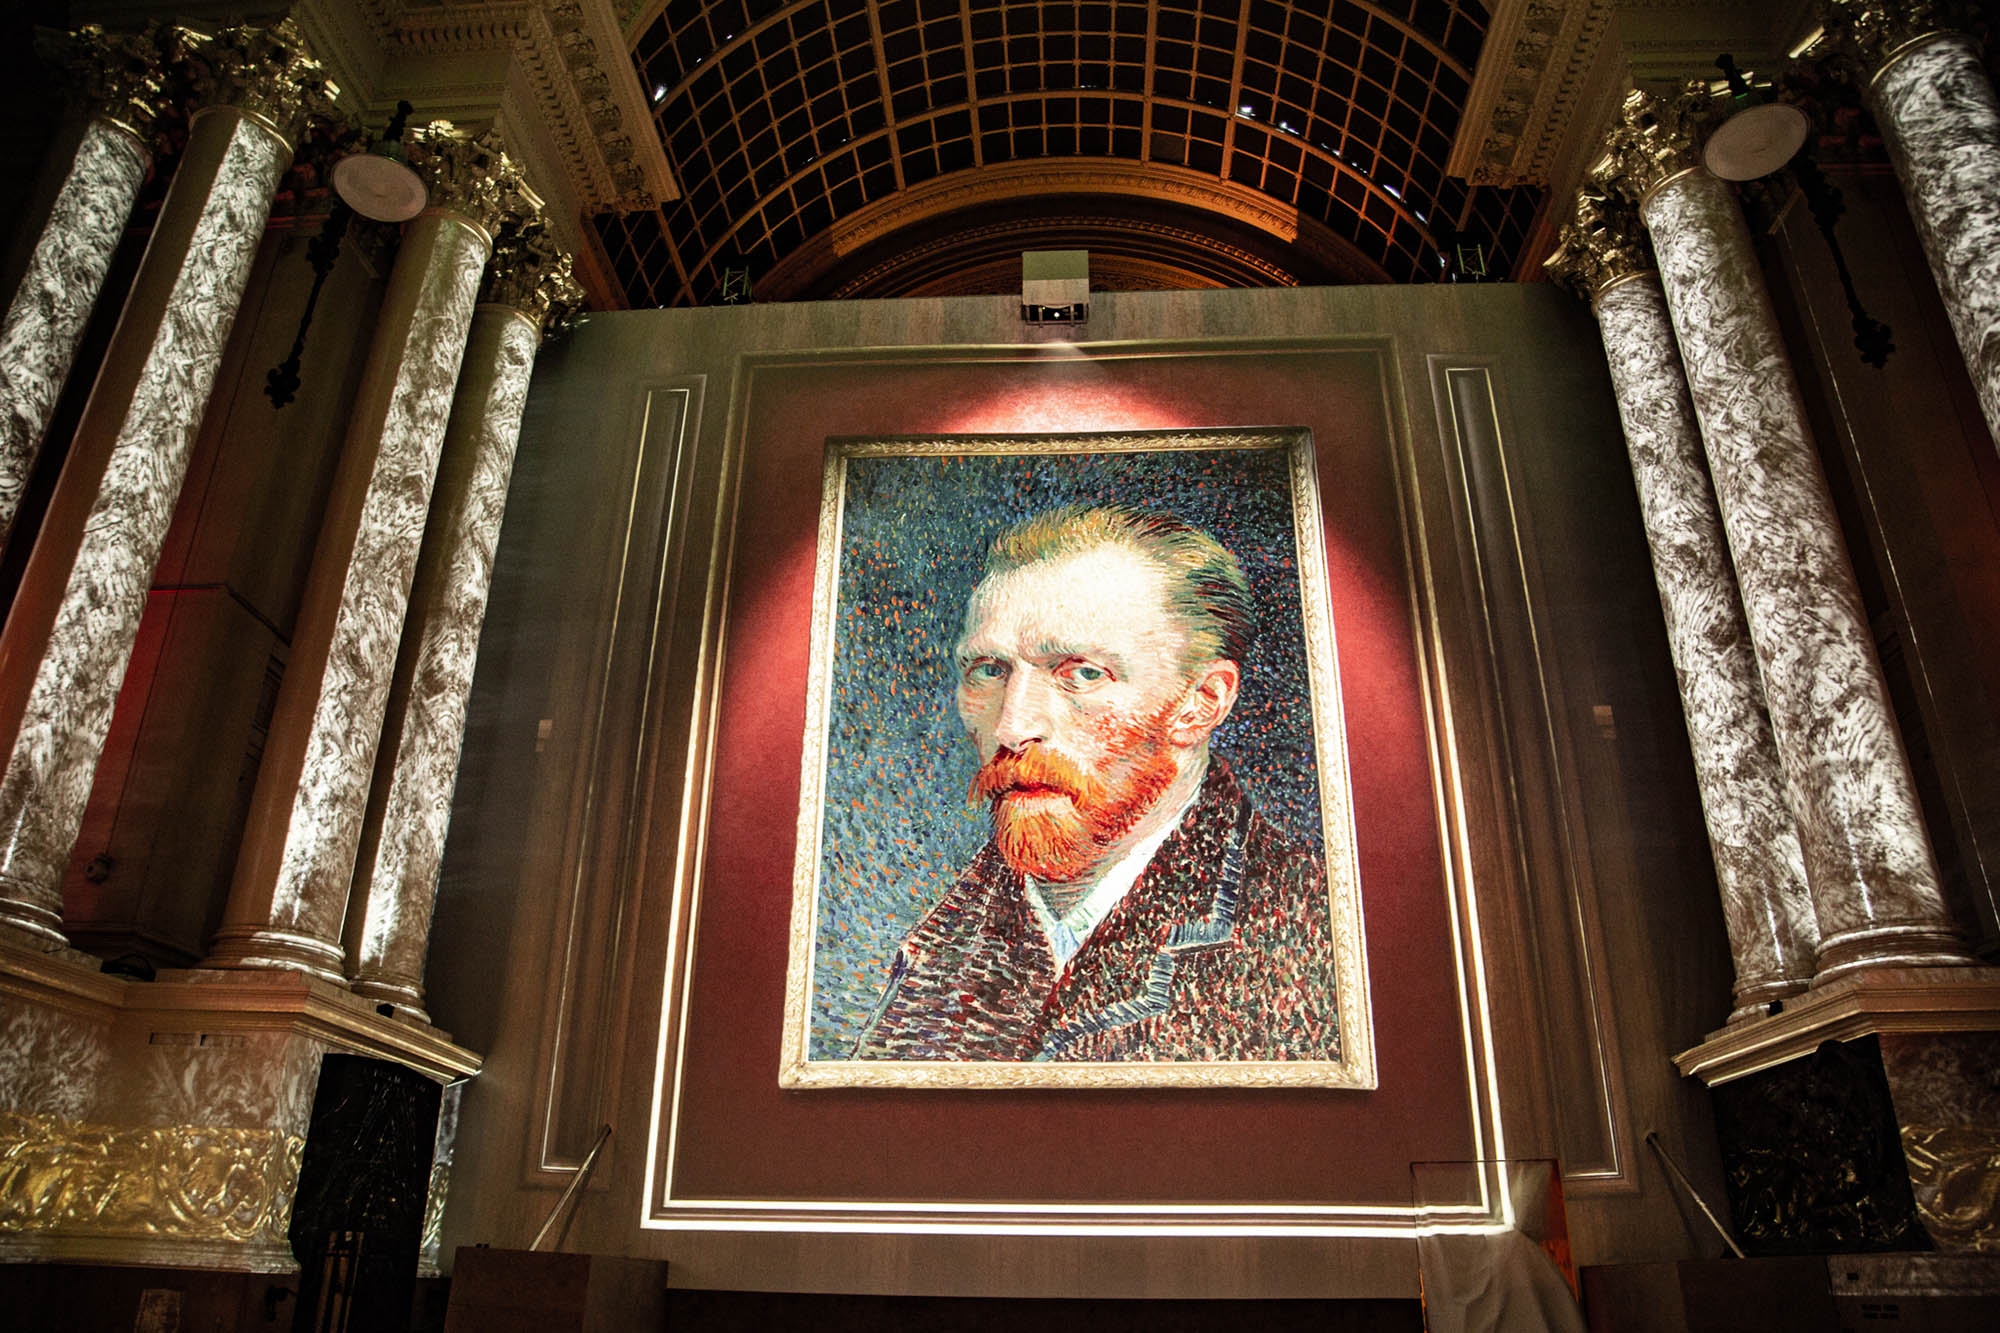 A multisensory Van Gogh experience at new Brussels exhibition | Lonely Planet